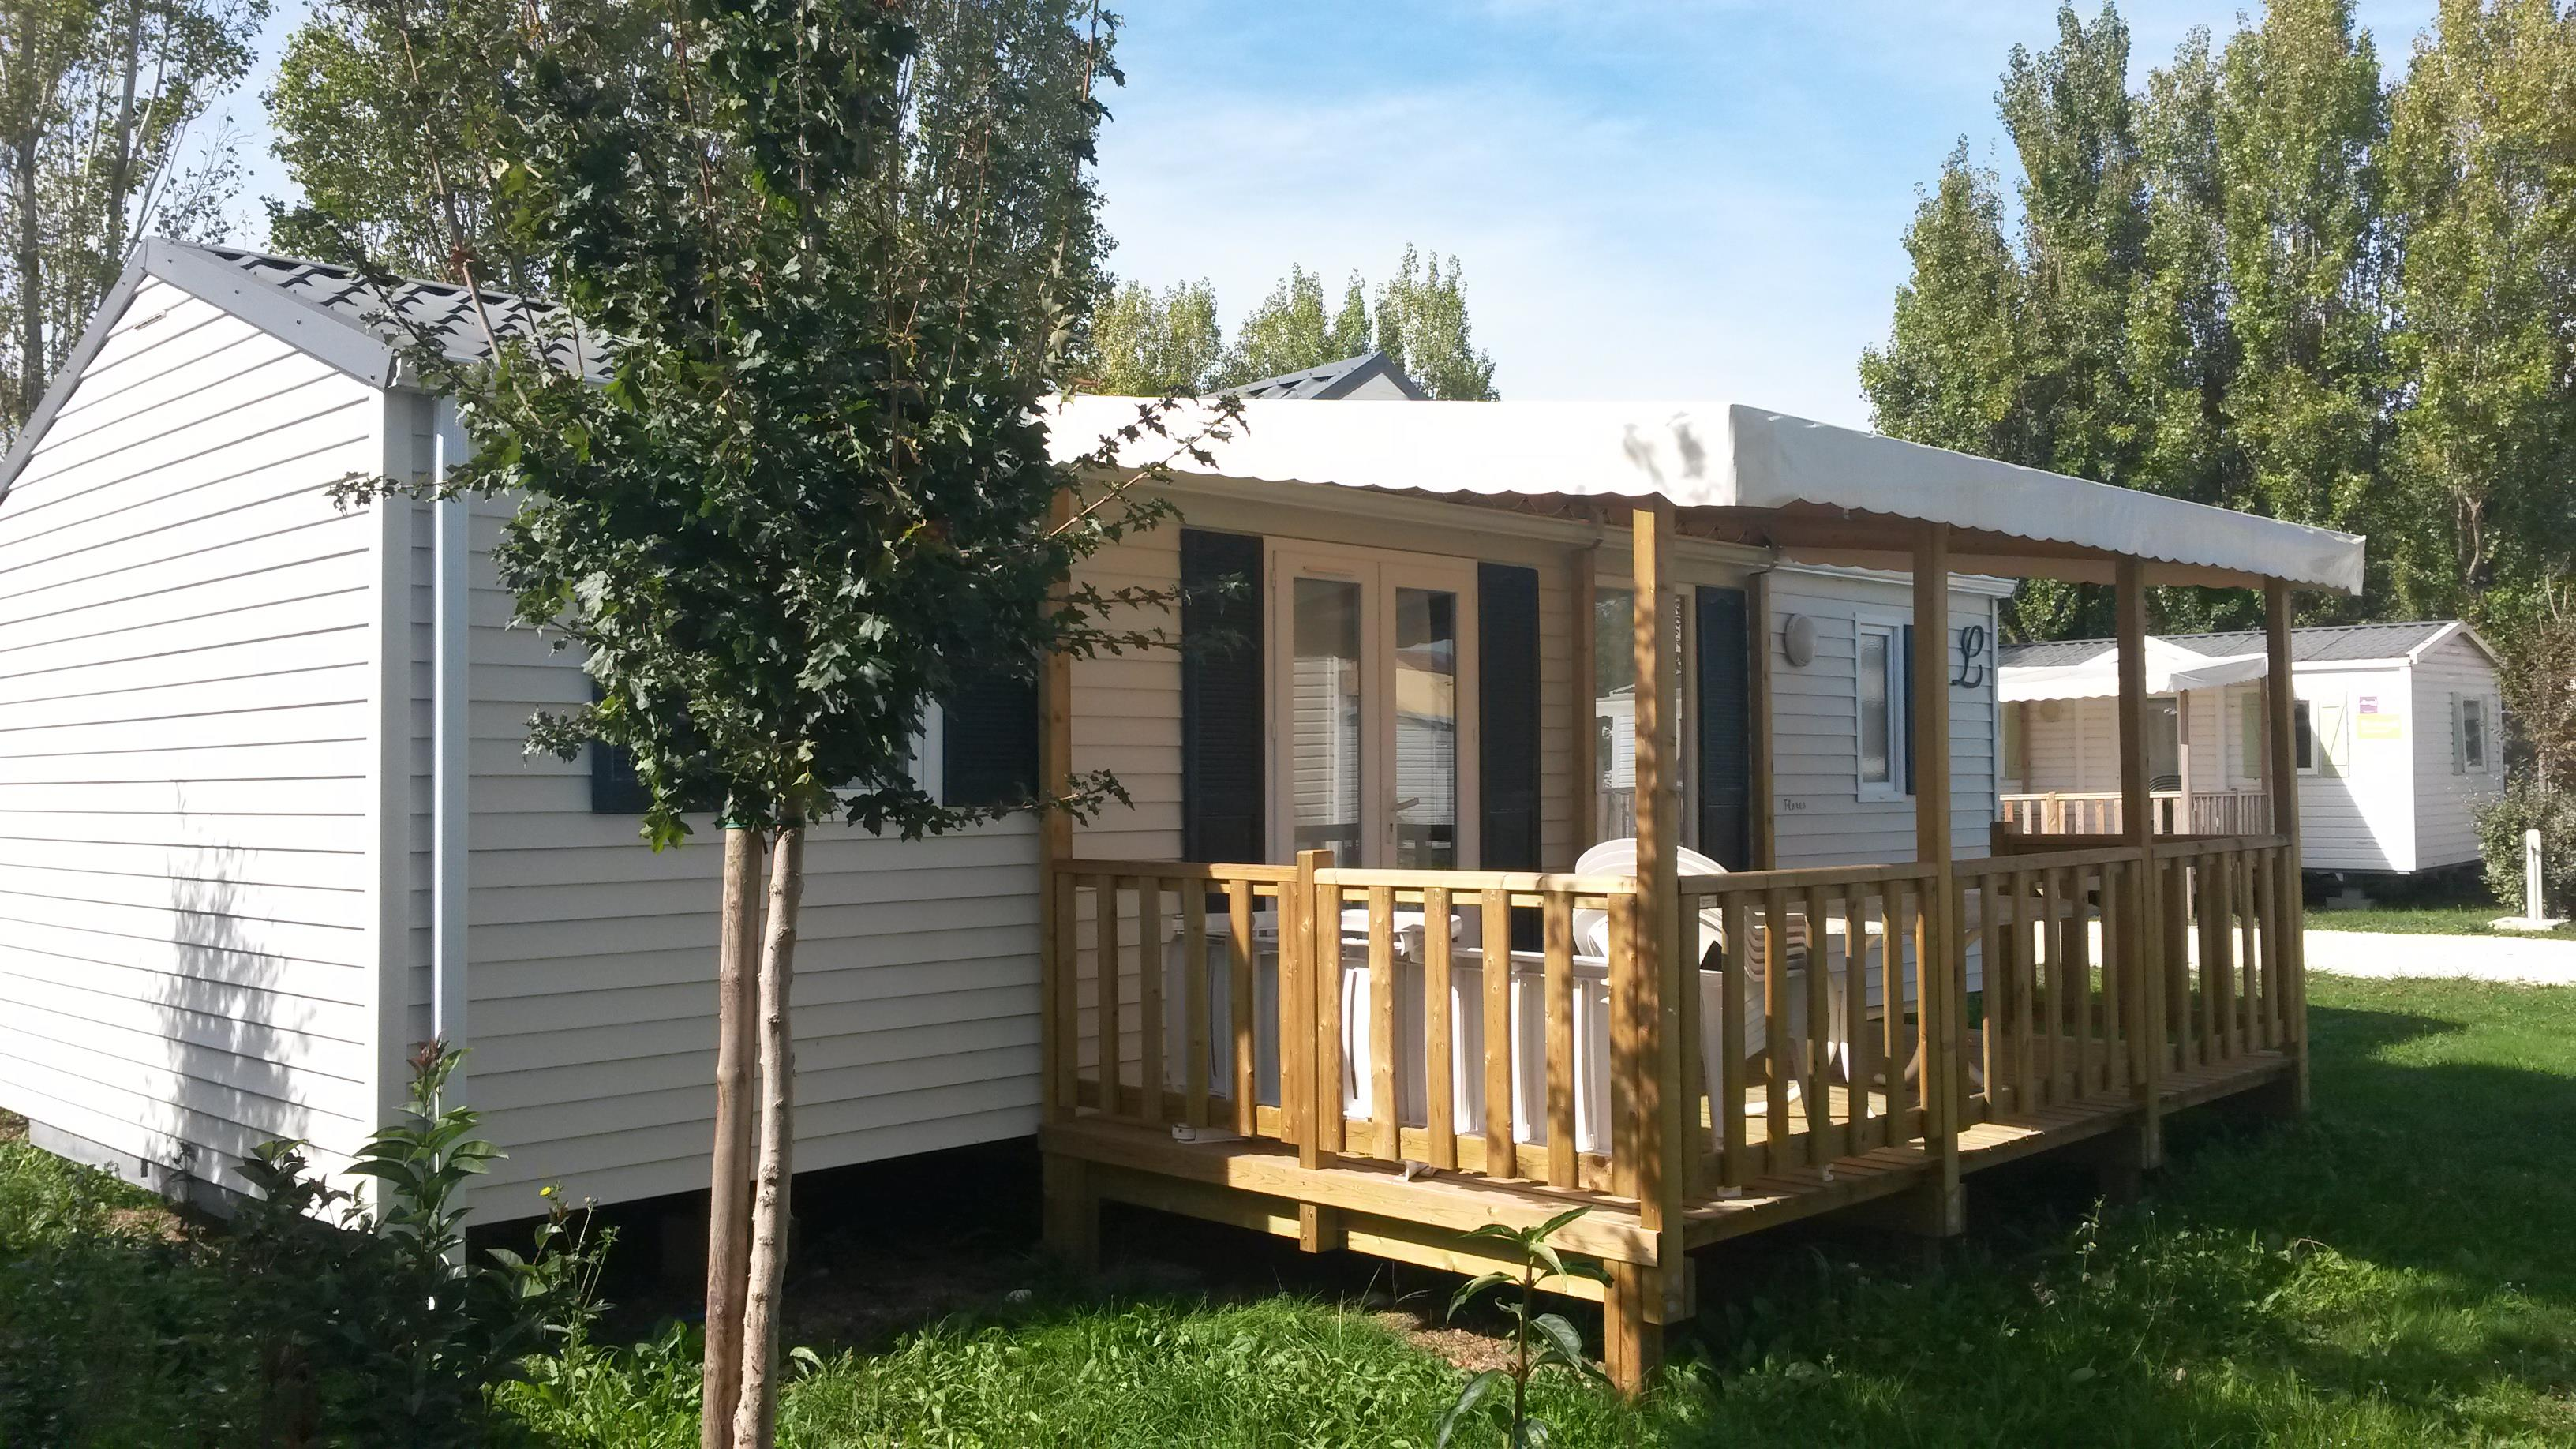 Mobil-home confort (3 bedrooms)